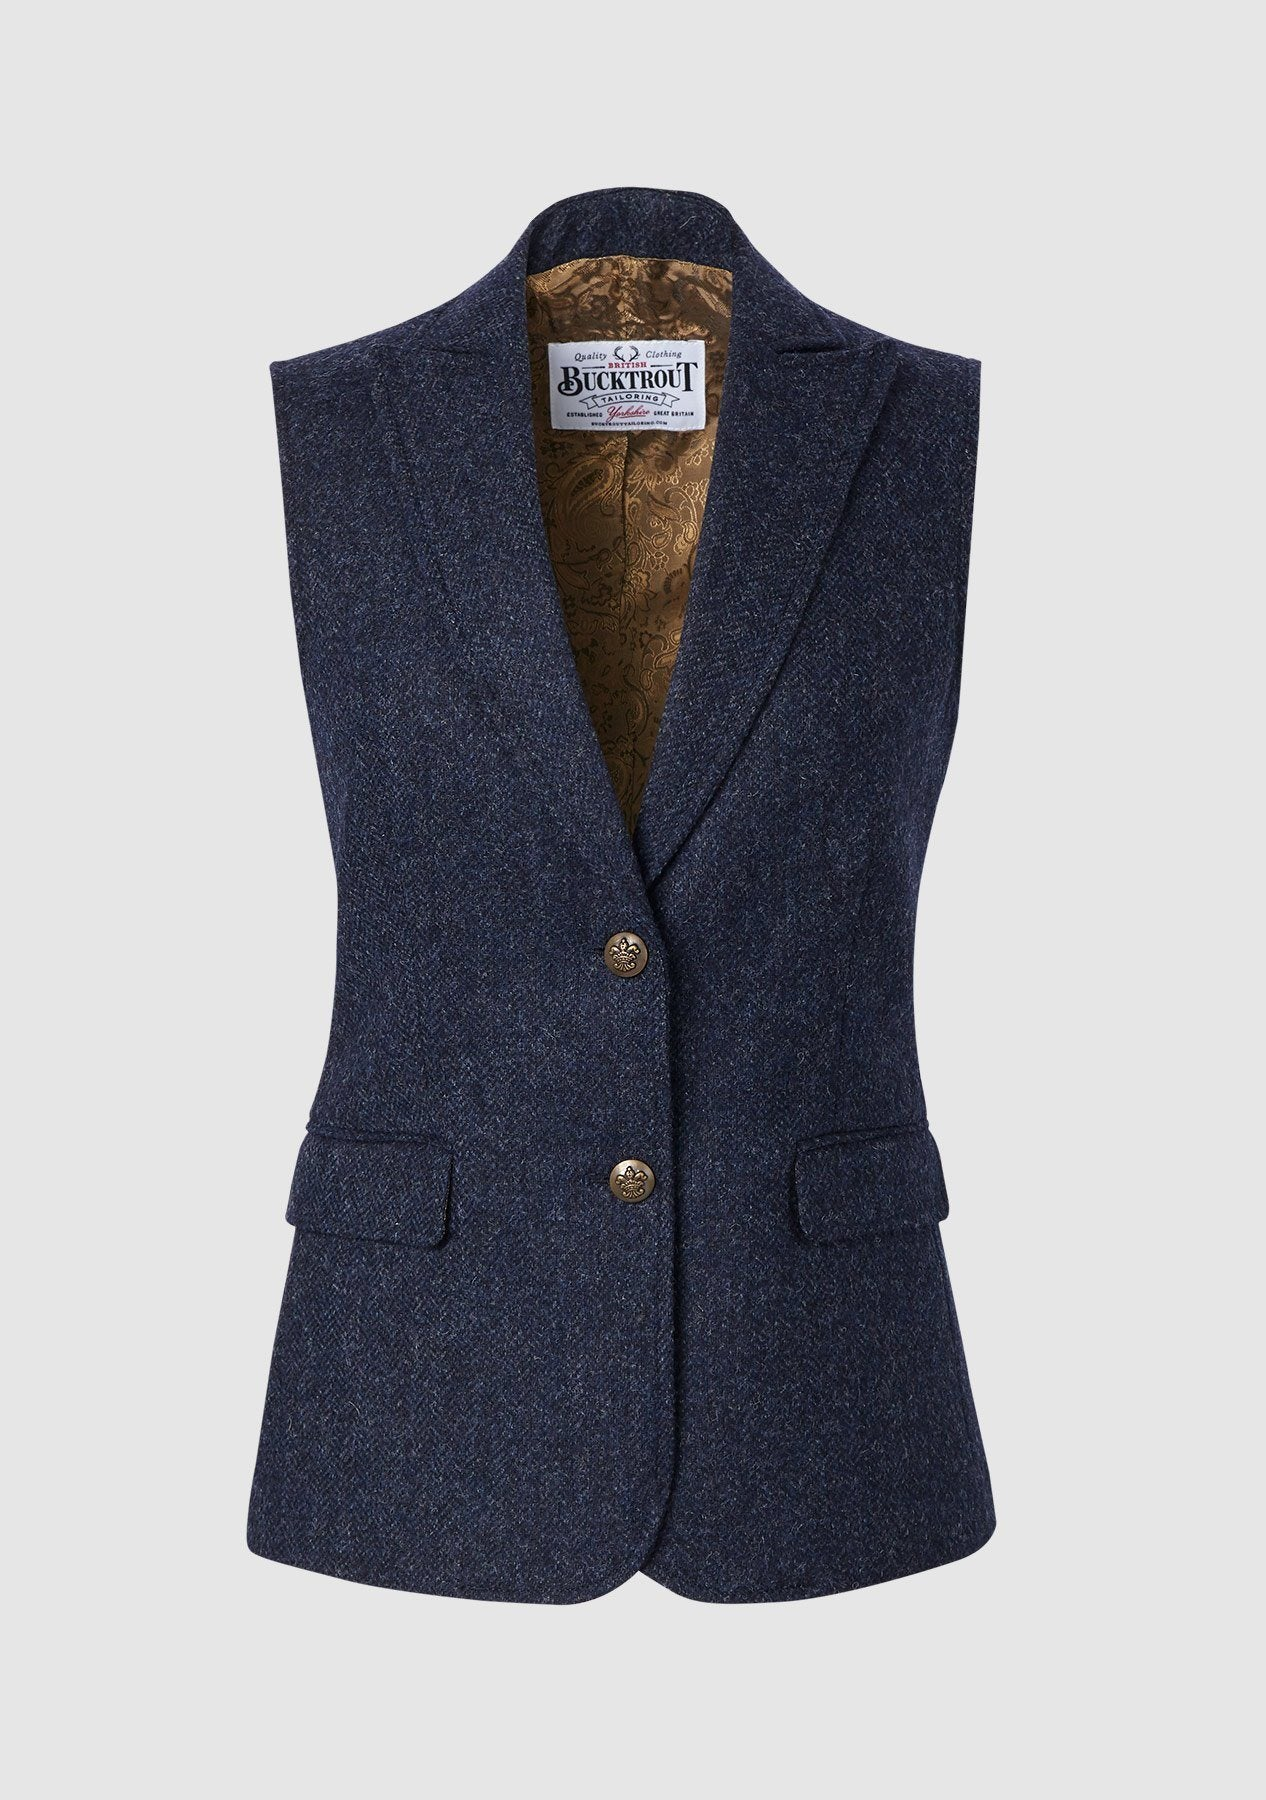 Image of   Pippa Waistcoat Yorkshire Tweed, blå herringbone